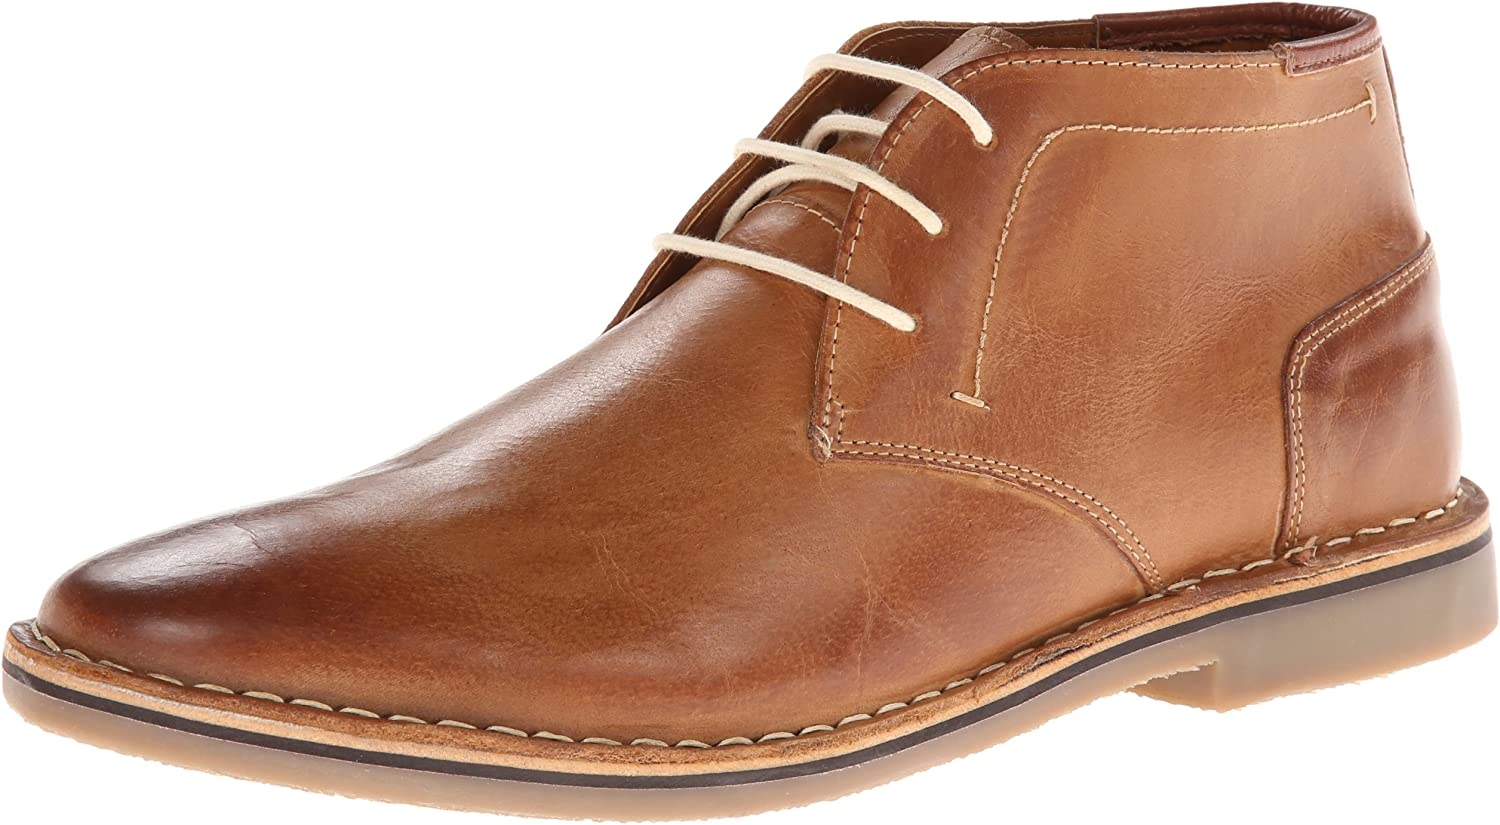 Eficacia Enemistarse Adiós  Steve Madden Men's Heston1: Amazon.ca: Shoes & Handbags